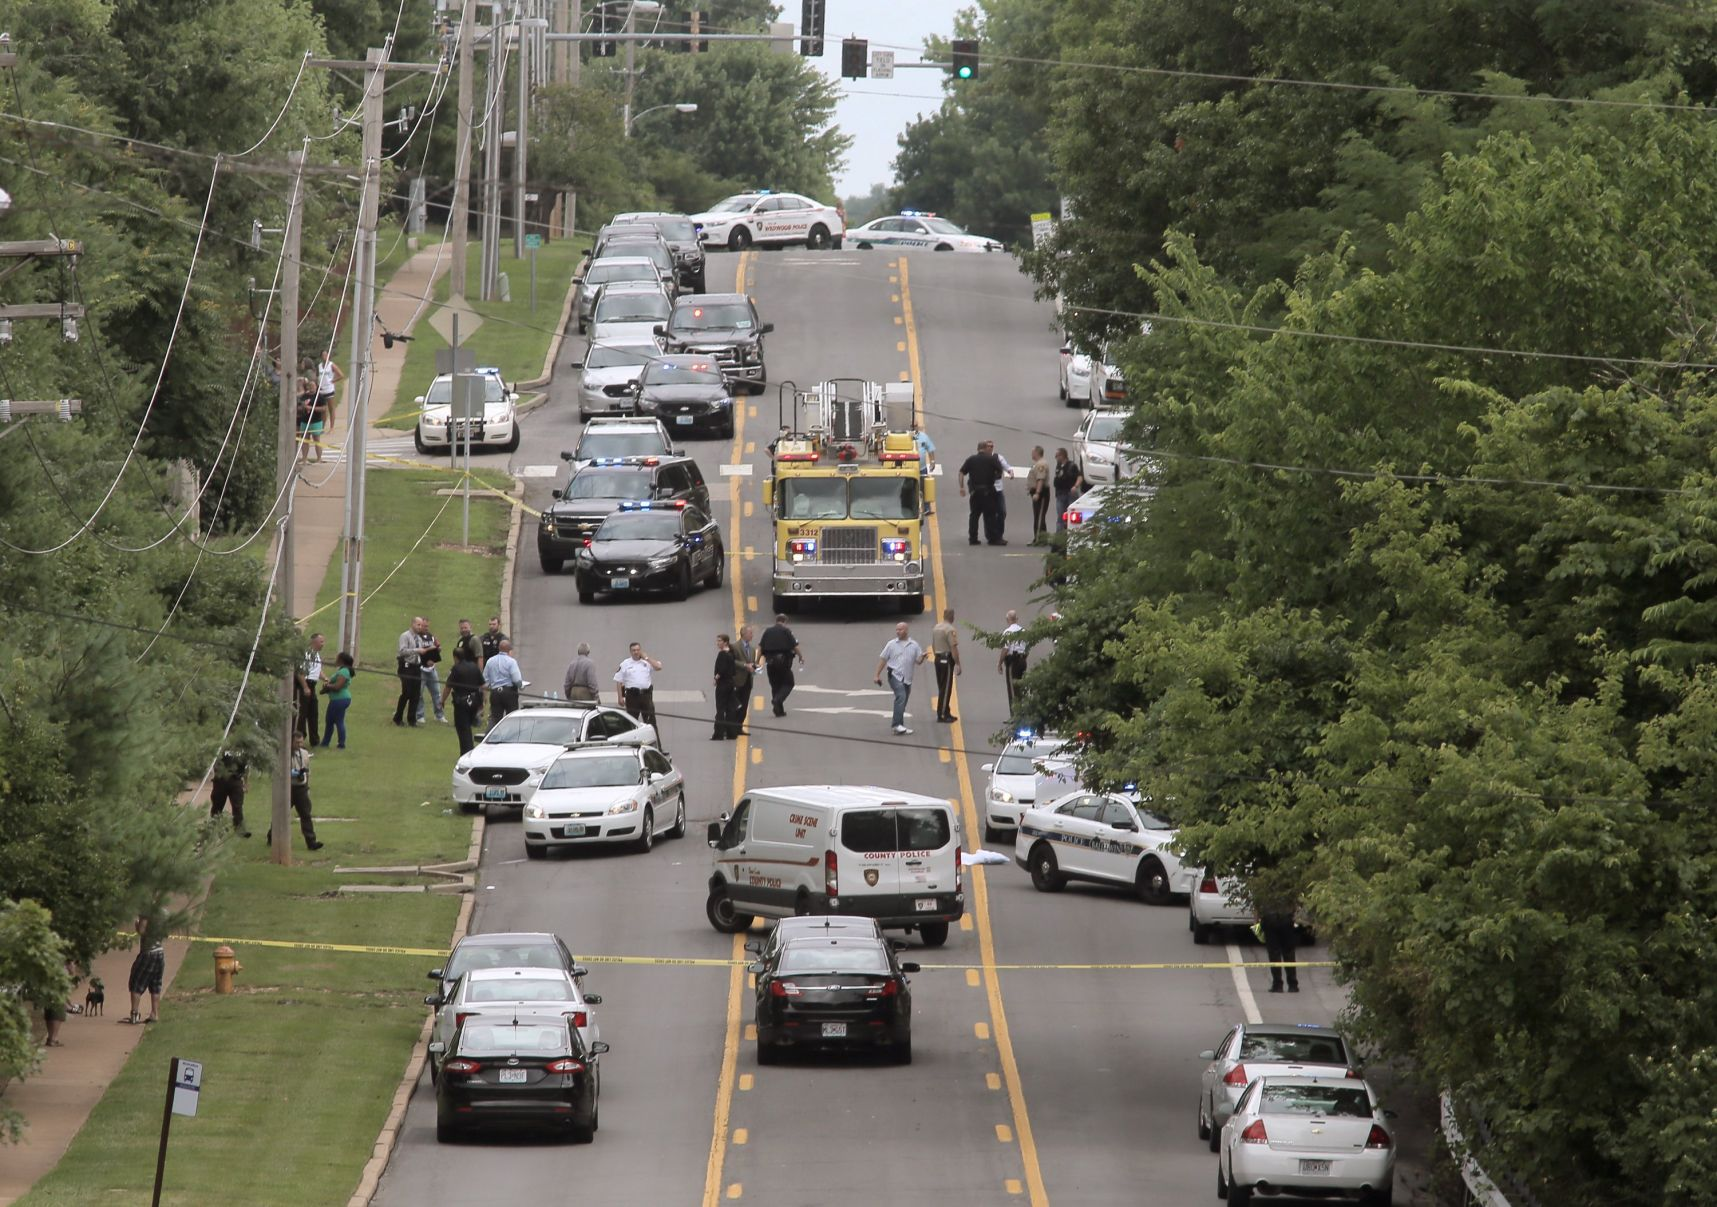 chief of police cover letter%0A Ballwin police officer shot